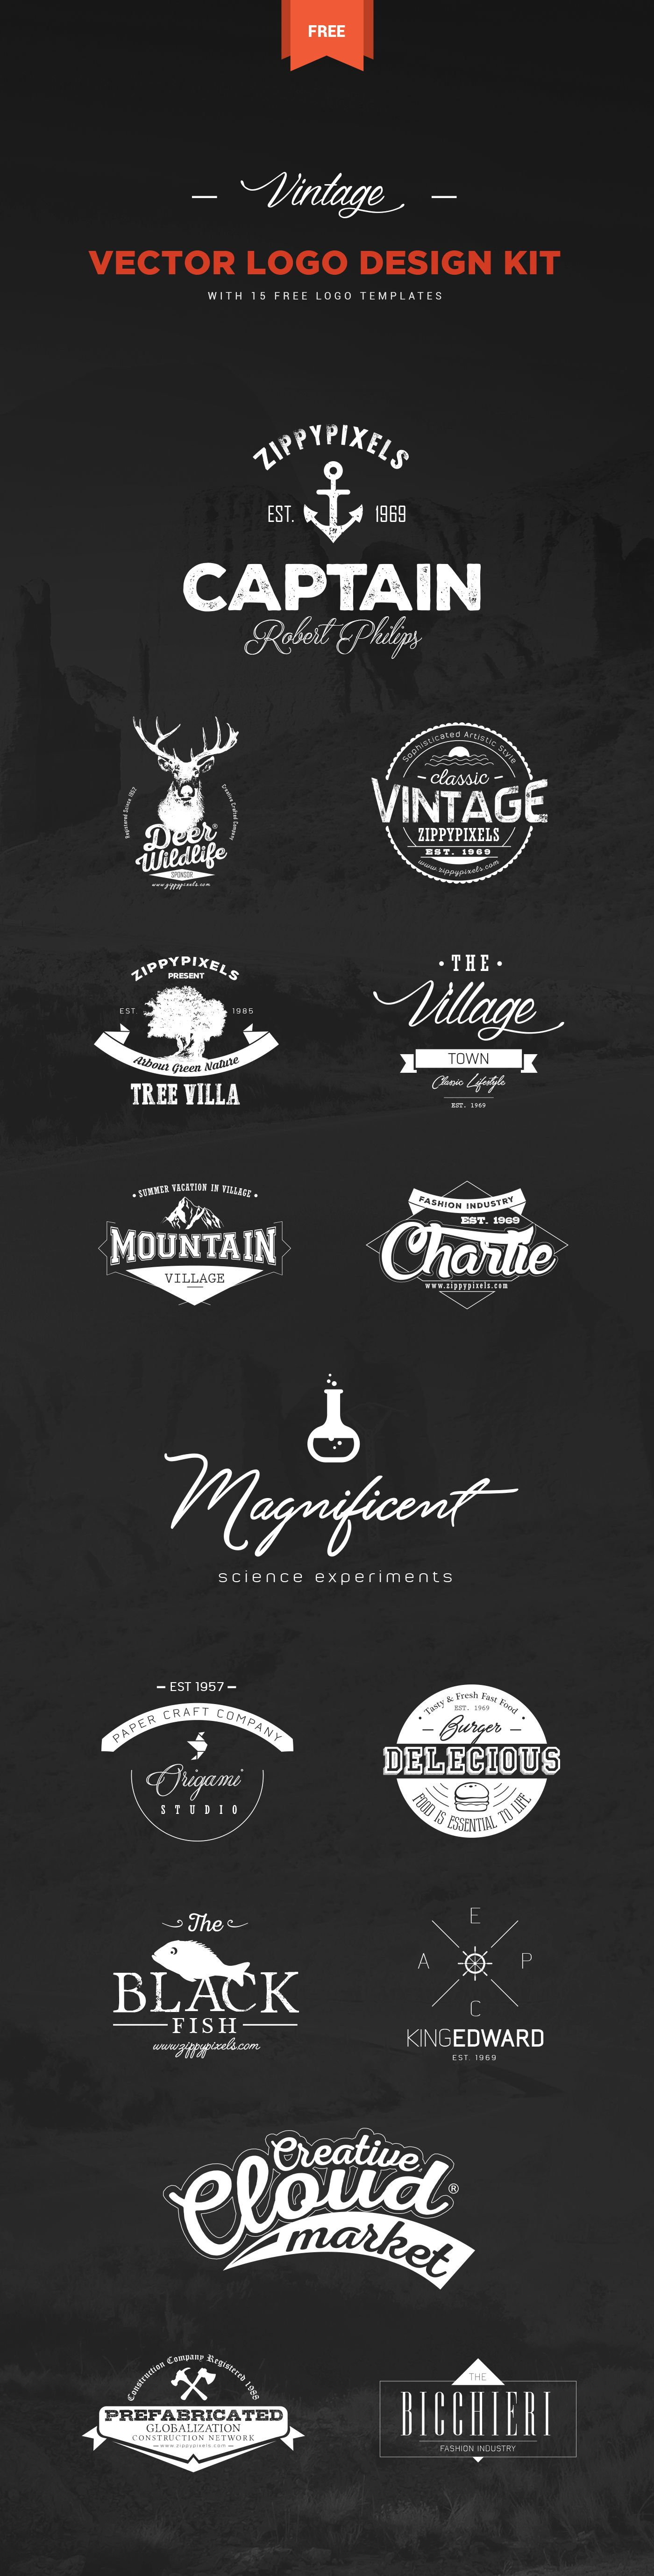 this free vintage logo design kit includes 15 beautifully crafted